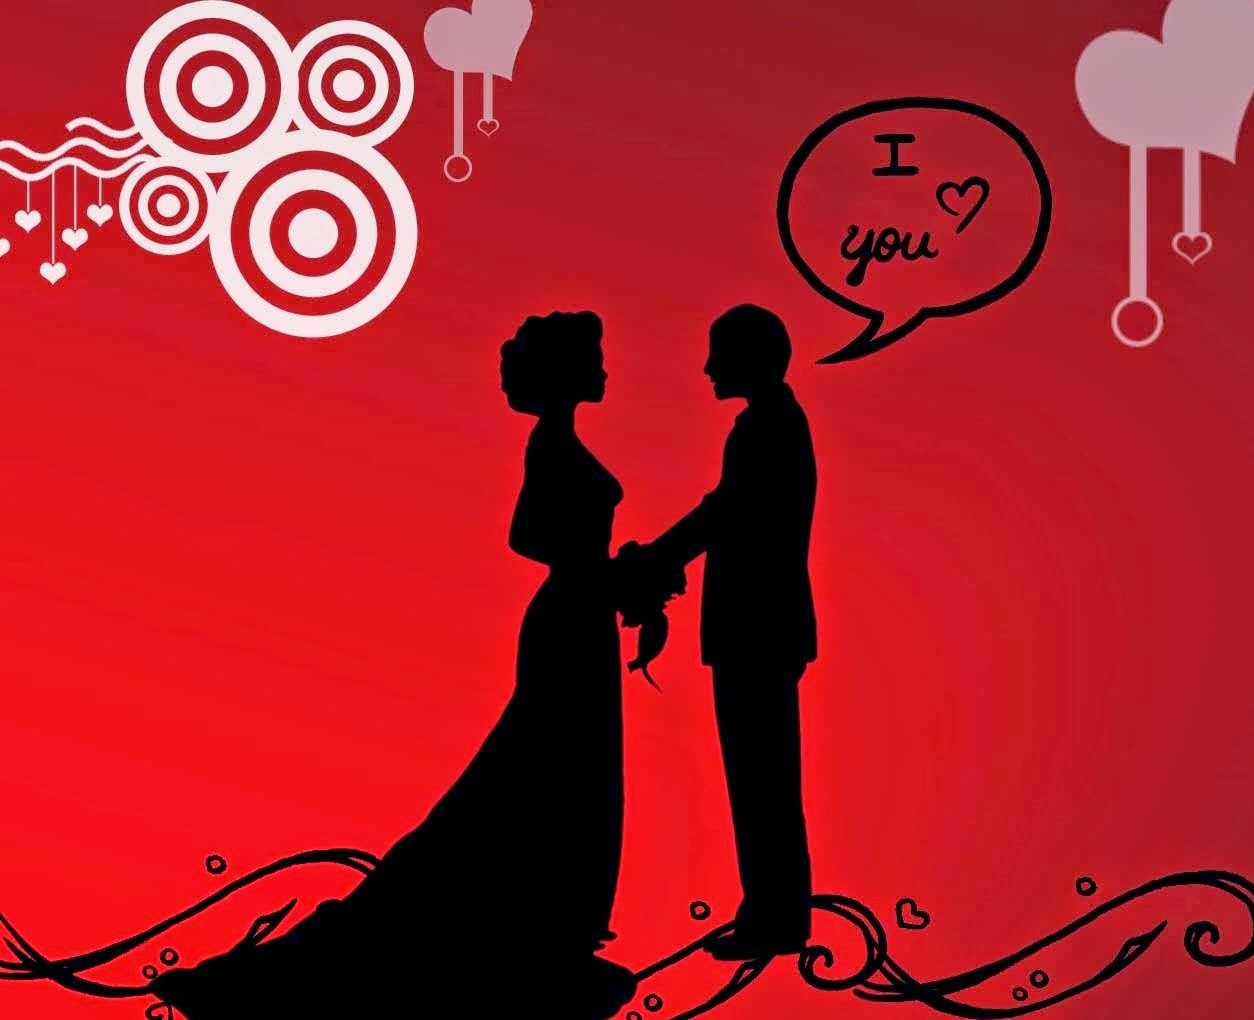 propose day quotes for twitter,facebook status